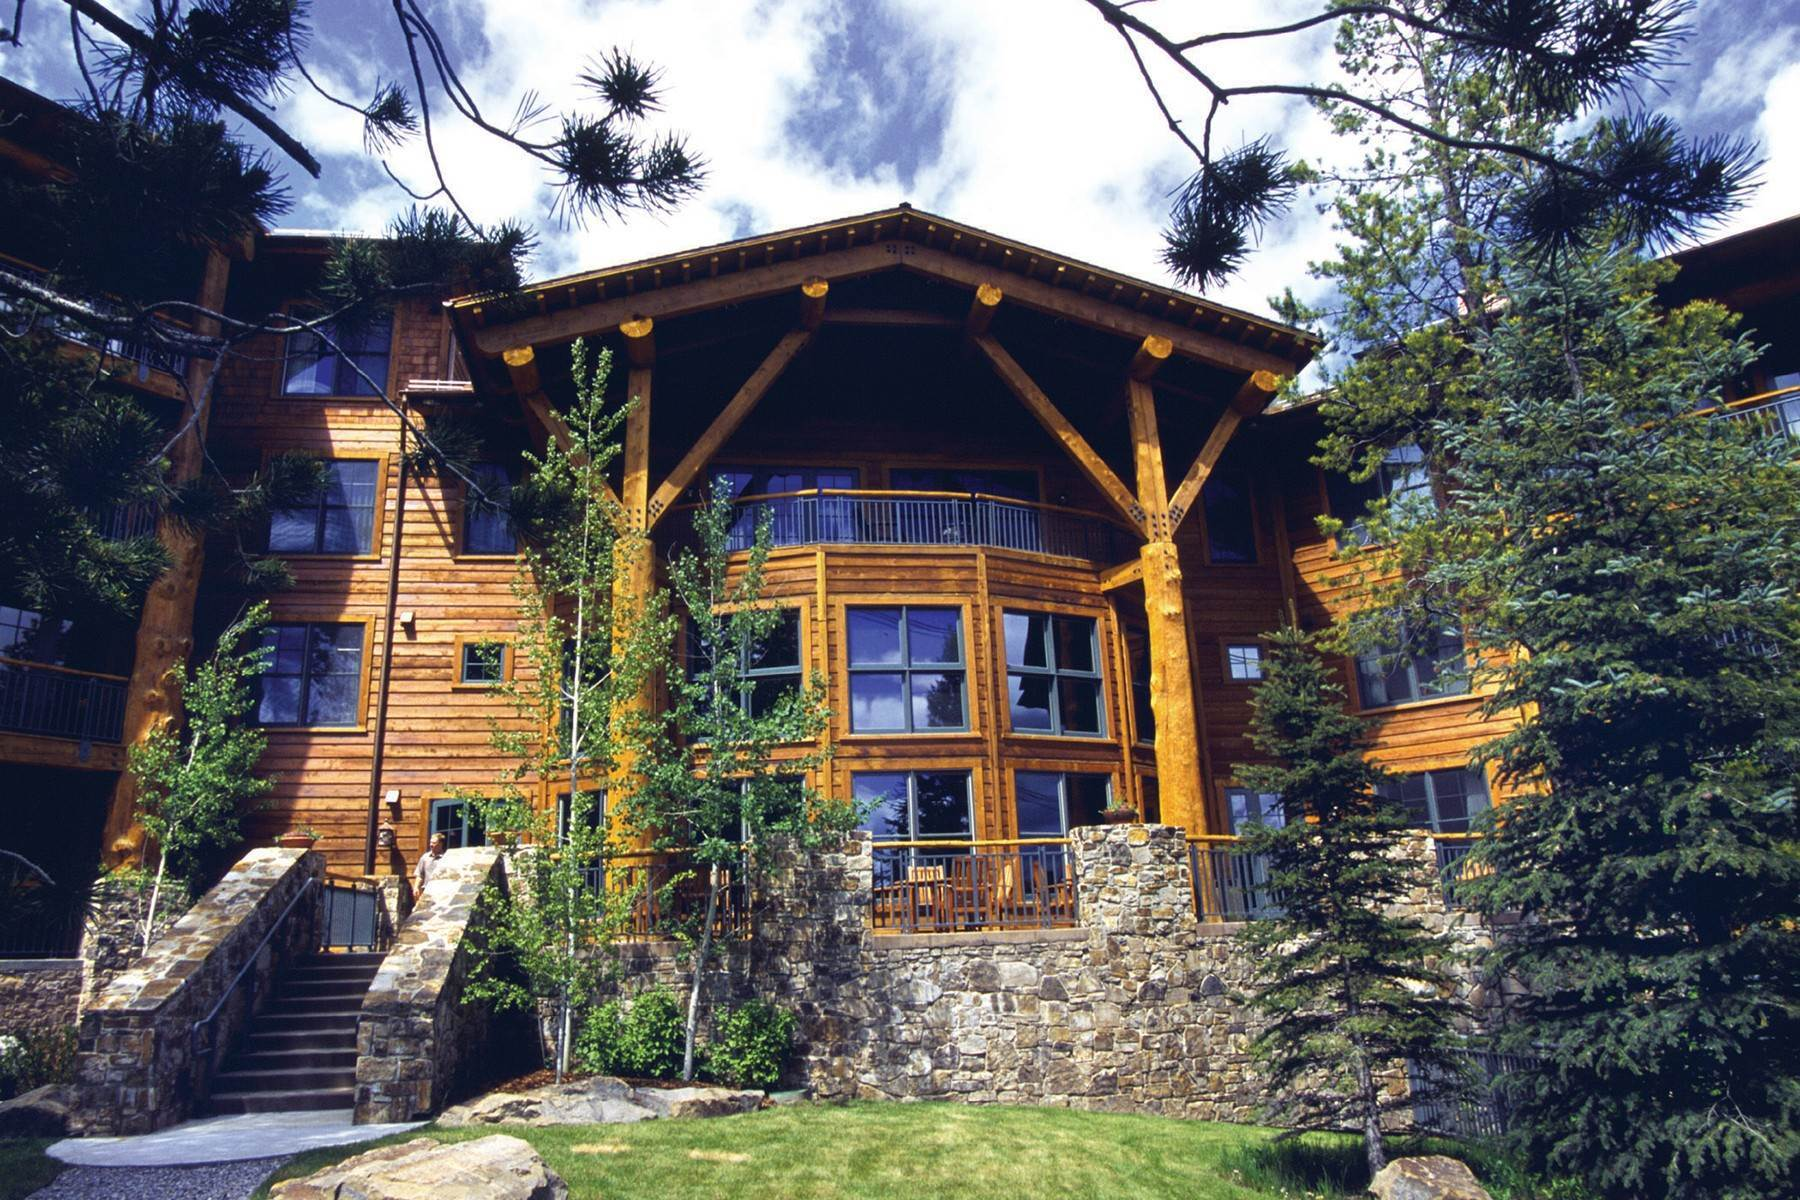 9. fractional ownership prop for Sale at Teton Club - Two Prime Summer Weeks 3340 W Cody Ln, #105 Teton Village, Wyoming 83025 United States